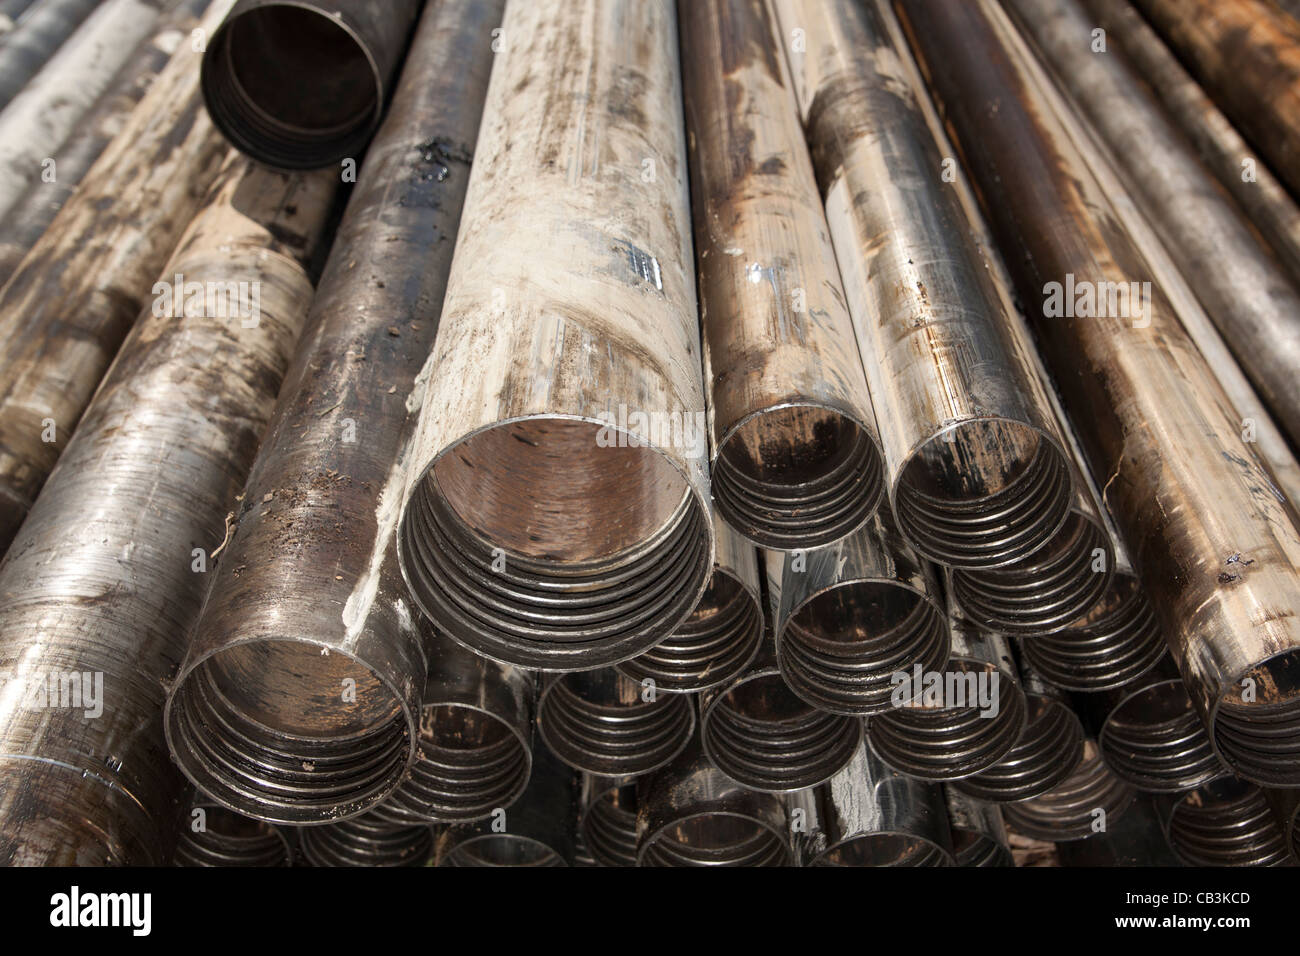 Drill rods in varying sizes HQ & NQ - Stock Image